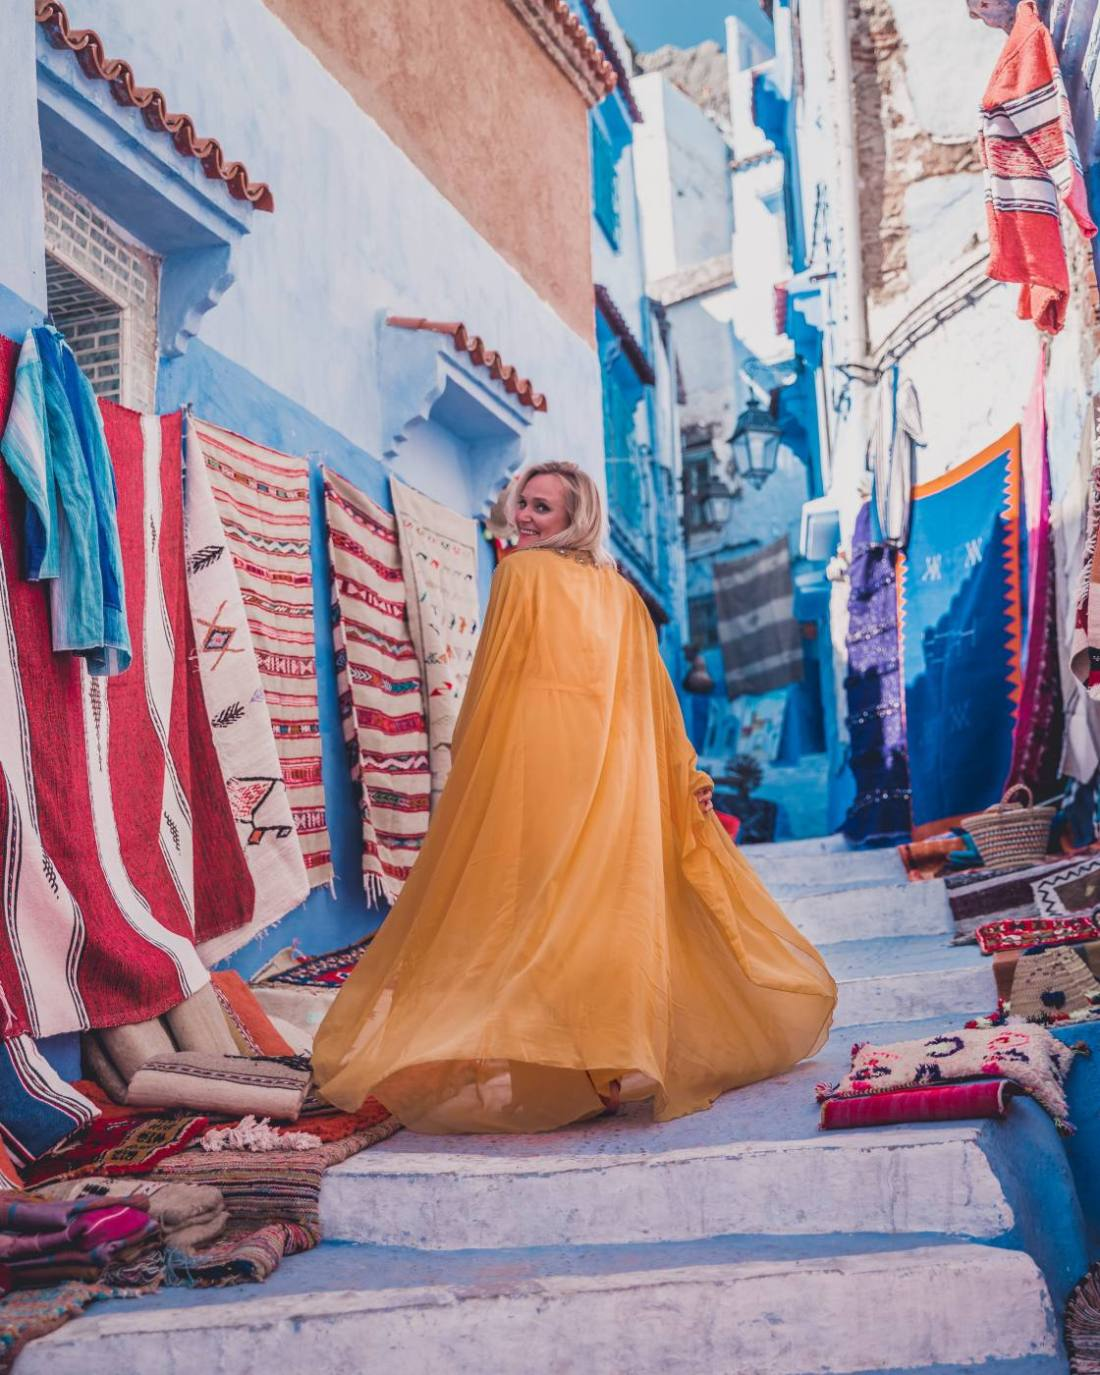 The Most Instagrammable places in Morocco.